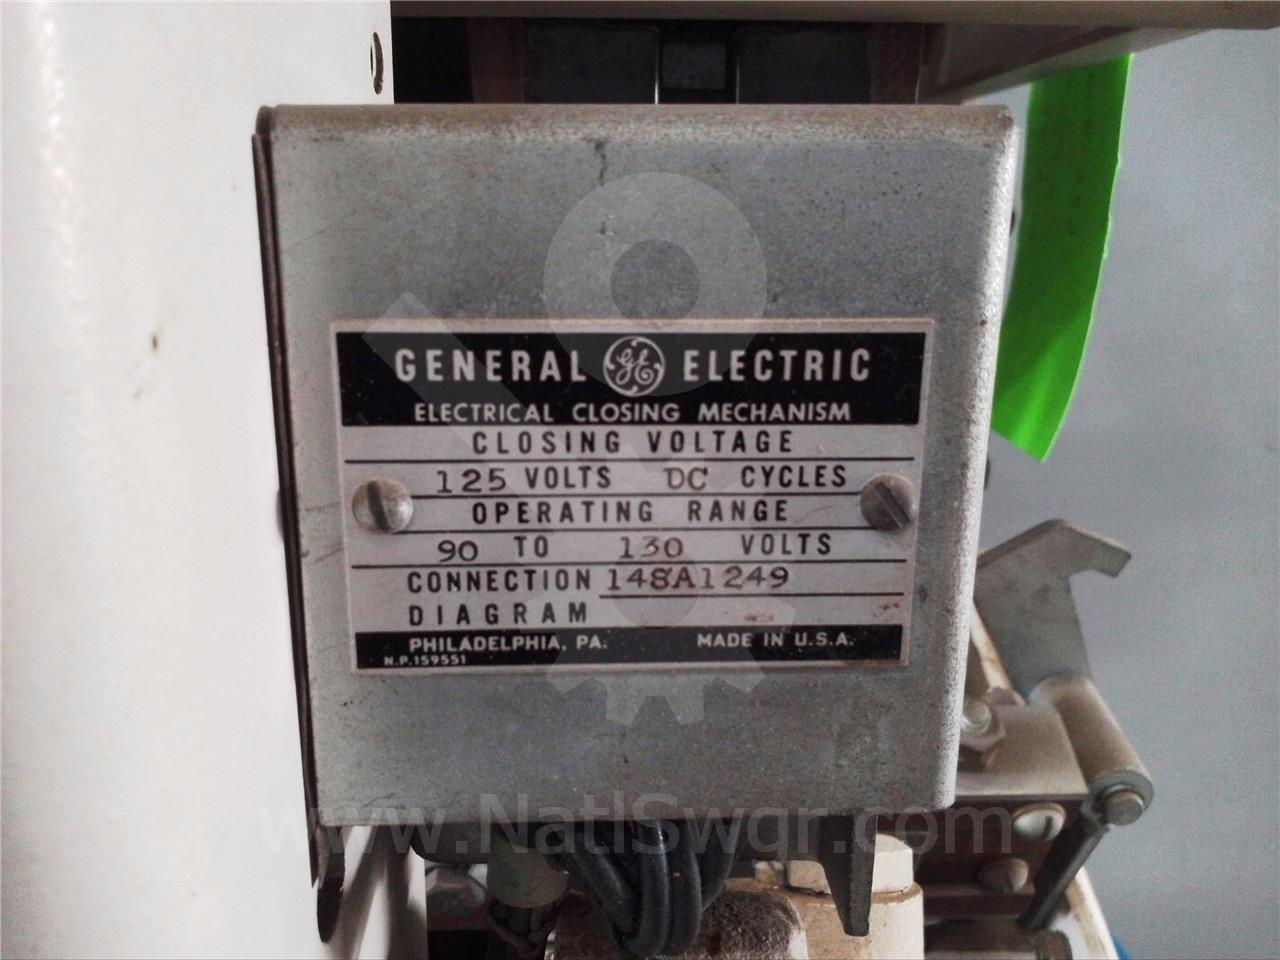 AK-2-50 1600A GE / General Electric EO/DO 125VDC CONTROL